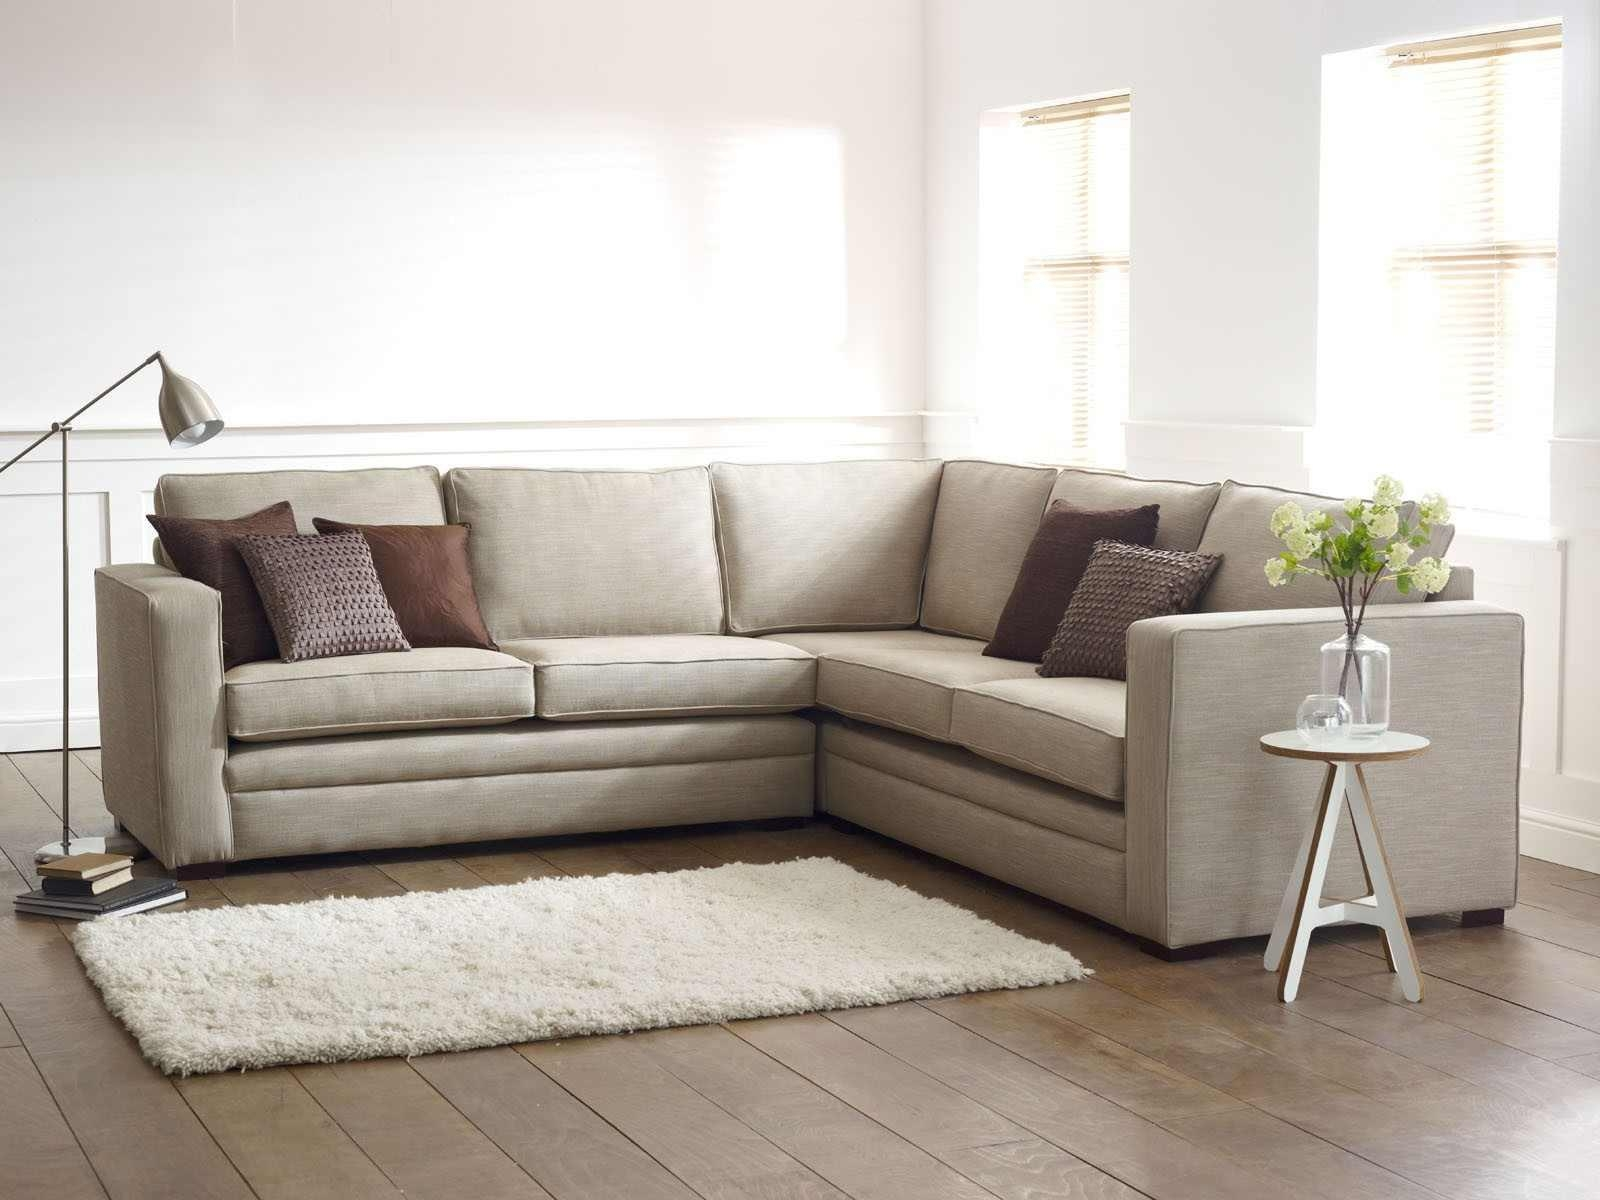 chaise sofa cali sized newport crsec sectional products linen small reversible condo right apartment newpo with brown urban